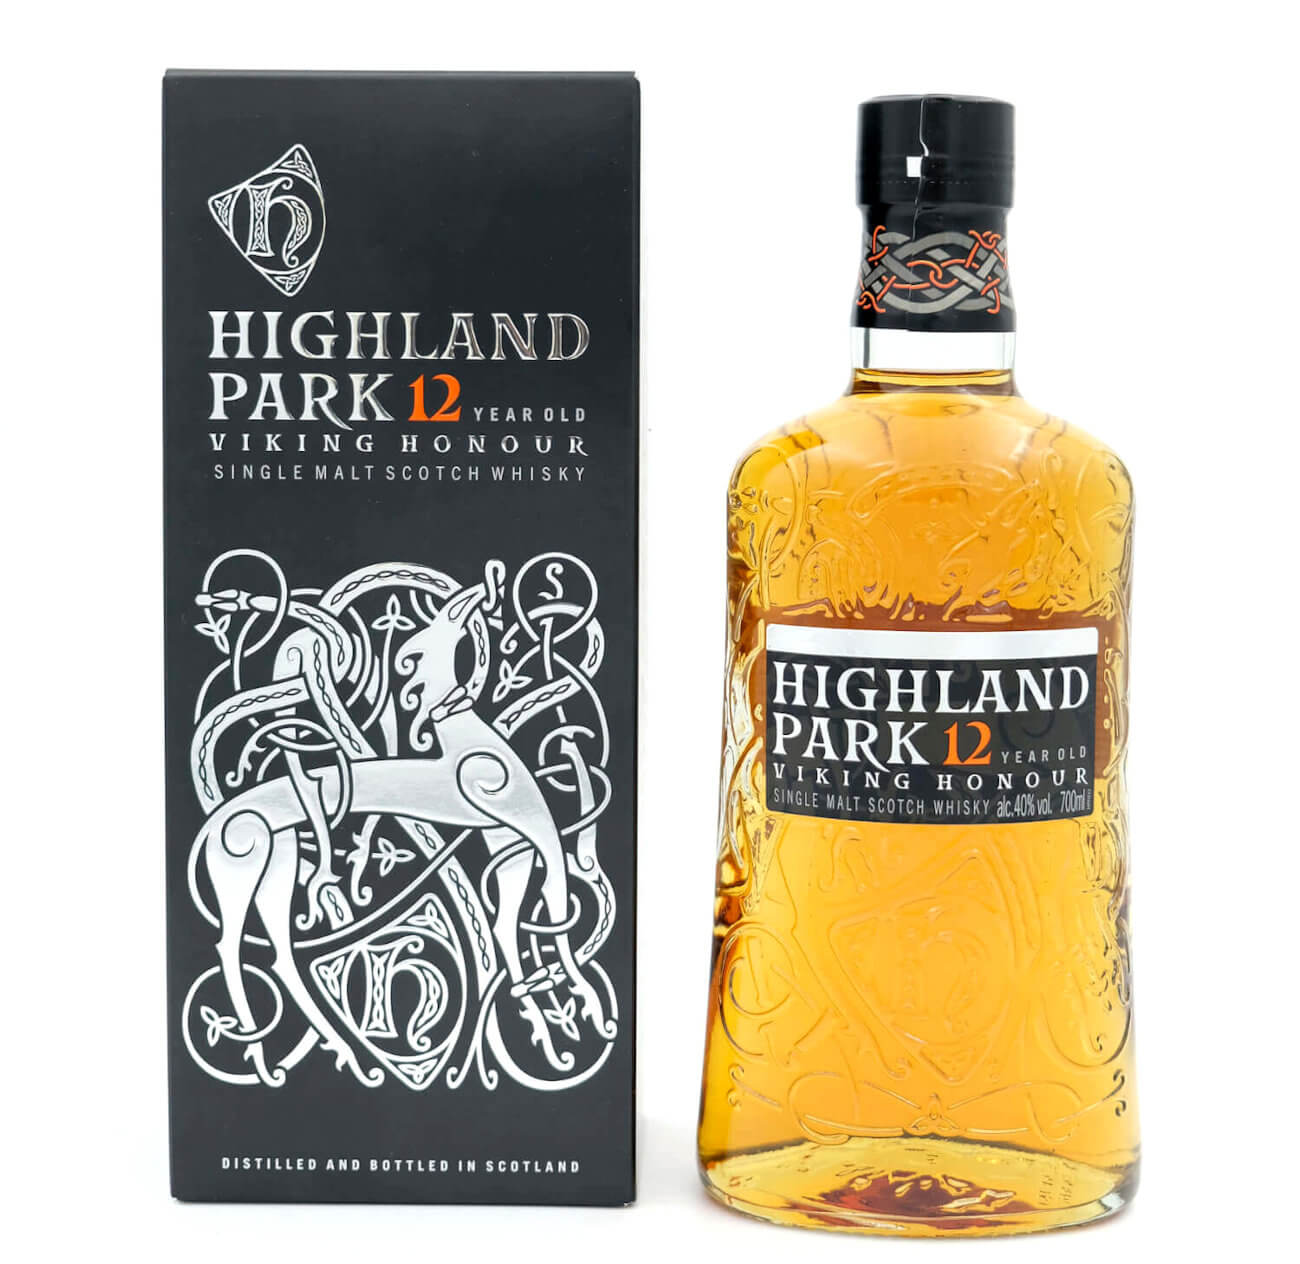 Highland Park 12 Viking Honour Whisky kaufen